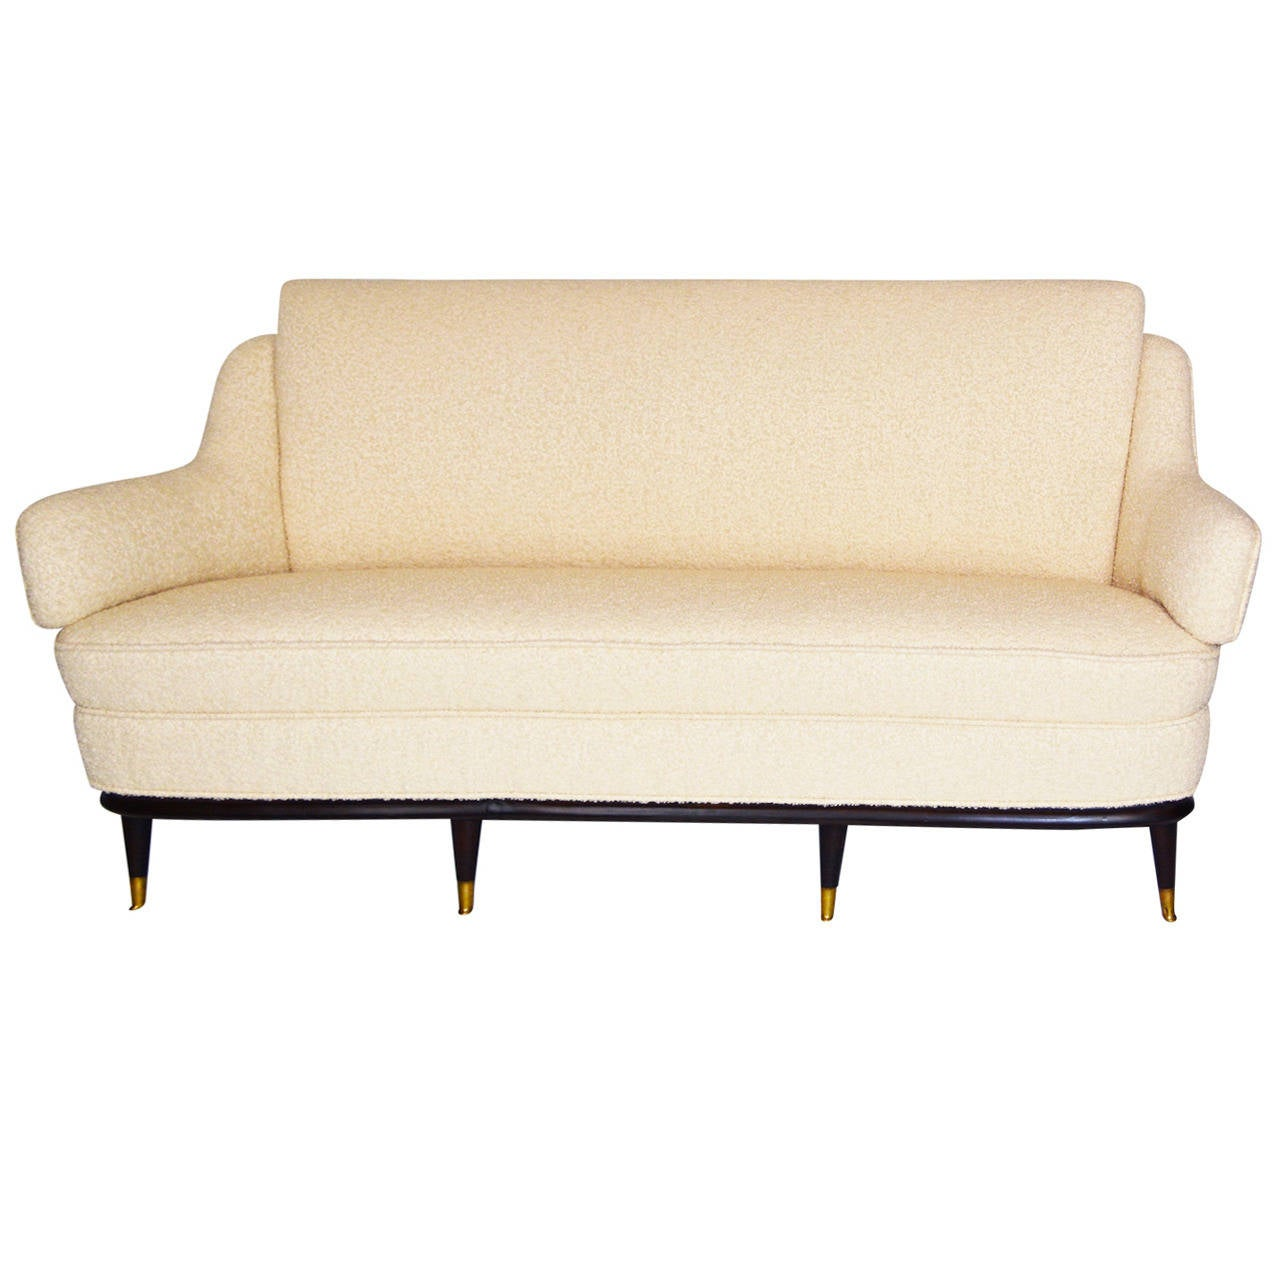 Sculptural Italian Sofa